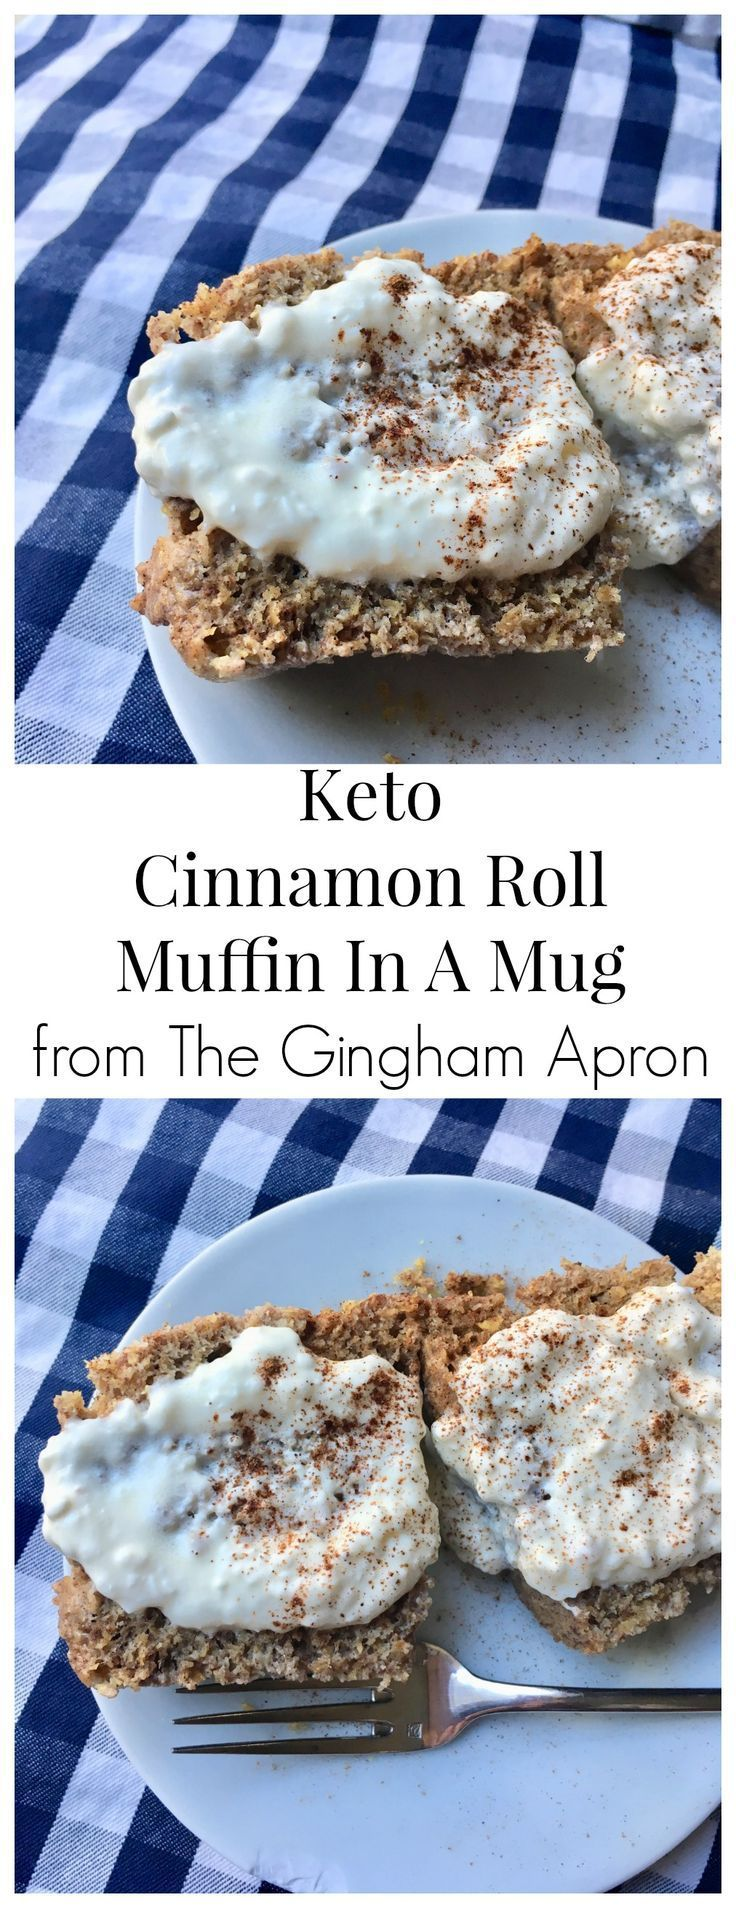 Keto Cinnamon Roll Muffin in a Mug- you won't believe that this warm delicious treat is low-carb. And the cream cheese frosting takes this over the top! Ready in minutes! Keto Recipes: